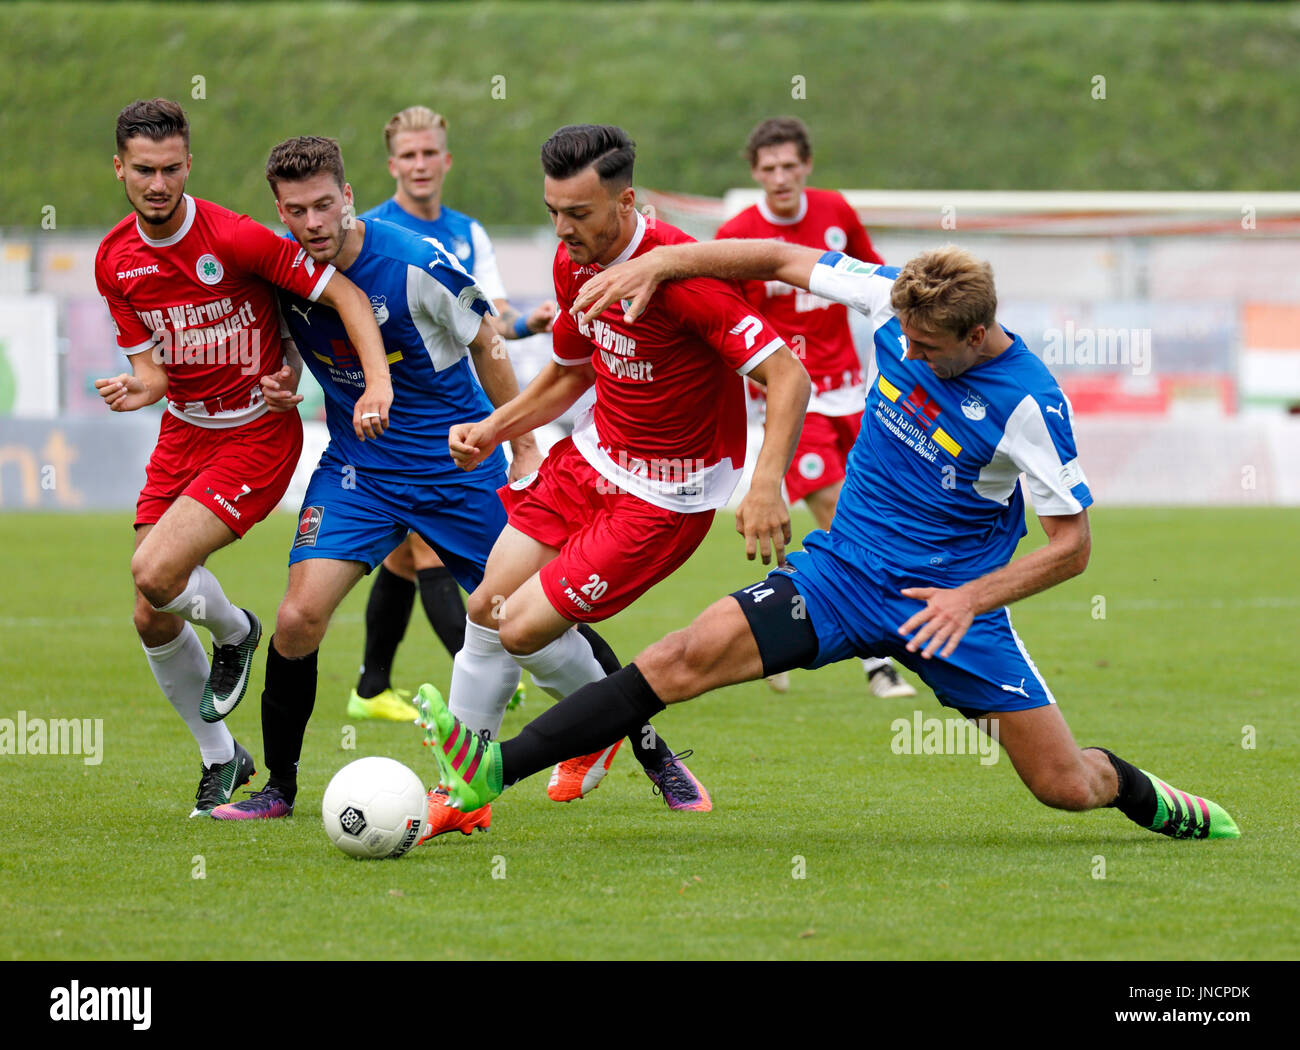 sports,football,Regional League West,2017/2018,Rot Weiss Oberhausen vs SV Westfalia Rhynern 2:1,Stadium Niederrhein in Oberhausen,scene of the match,f.l.t.r. Enes Topal (RWO),Jan Kleine (Rhynern),Nils Hoenicke (Rhynern),Tarik Kurt (RWO),Robert Flessers (RWO),sliding tackle by Patrick Polk (Rhynern) - Stock Image